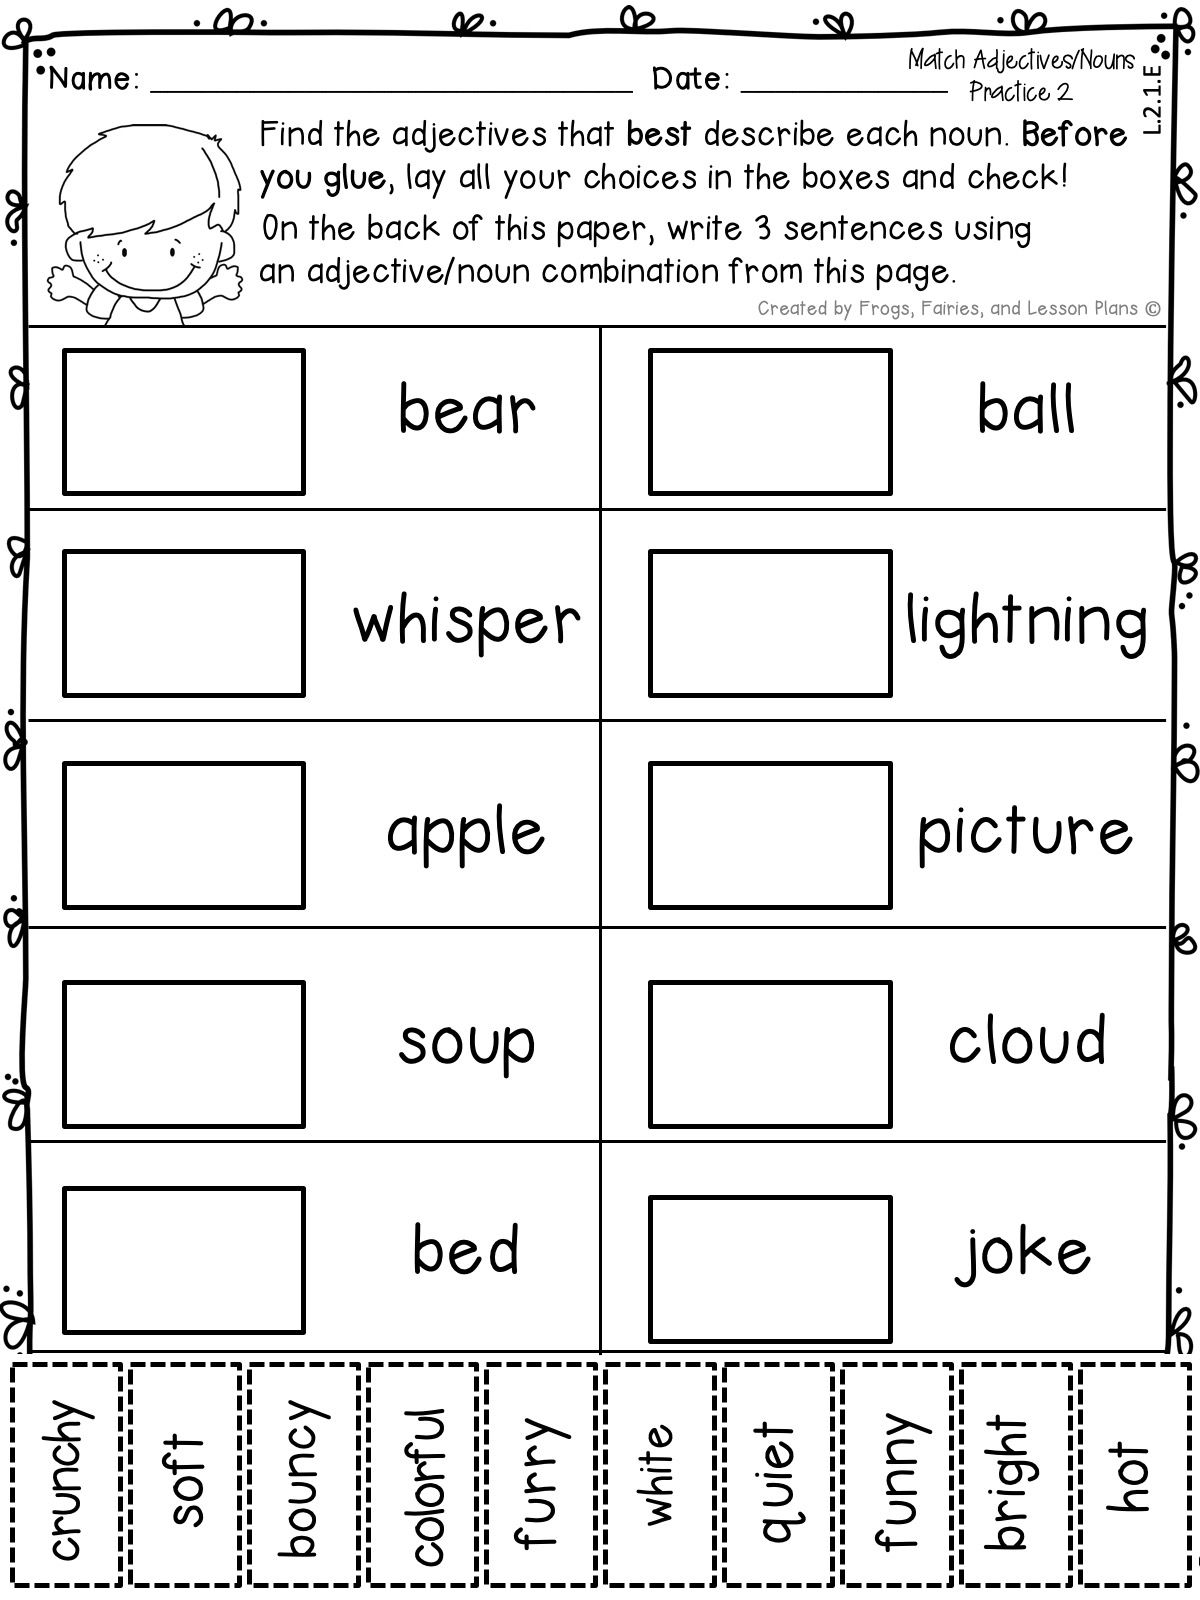 Adjective And Adverb Resources For 2nd Graders Adjectives Activities Adverb Activities Adjective Worksheet [ 1600 x 1200 Pixel ]